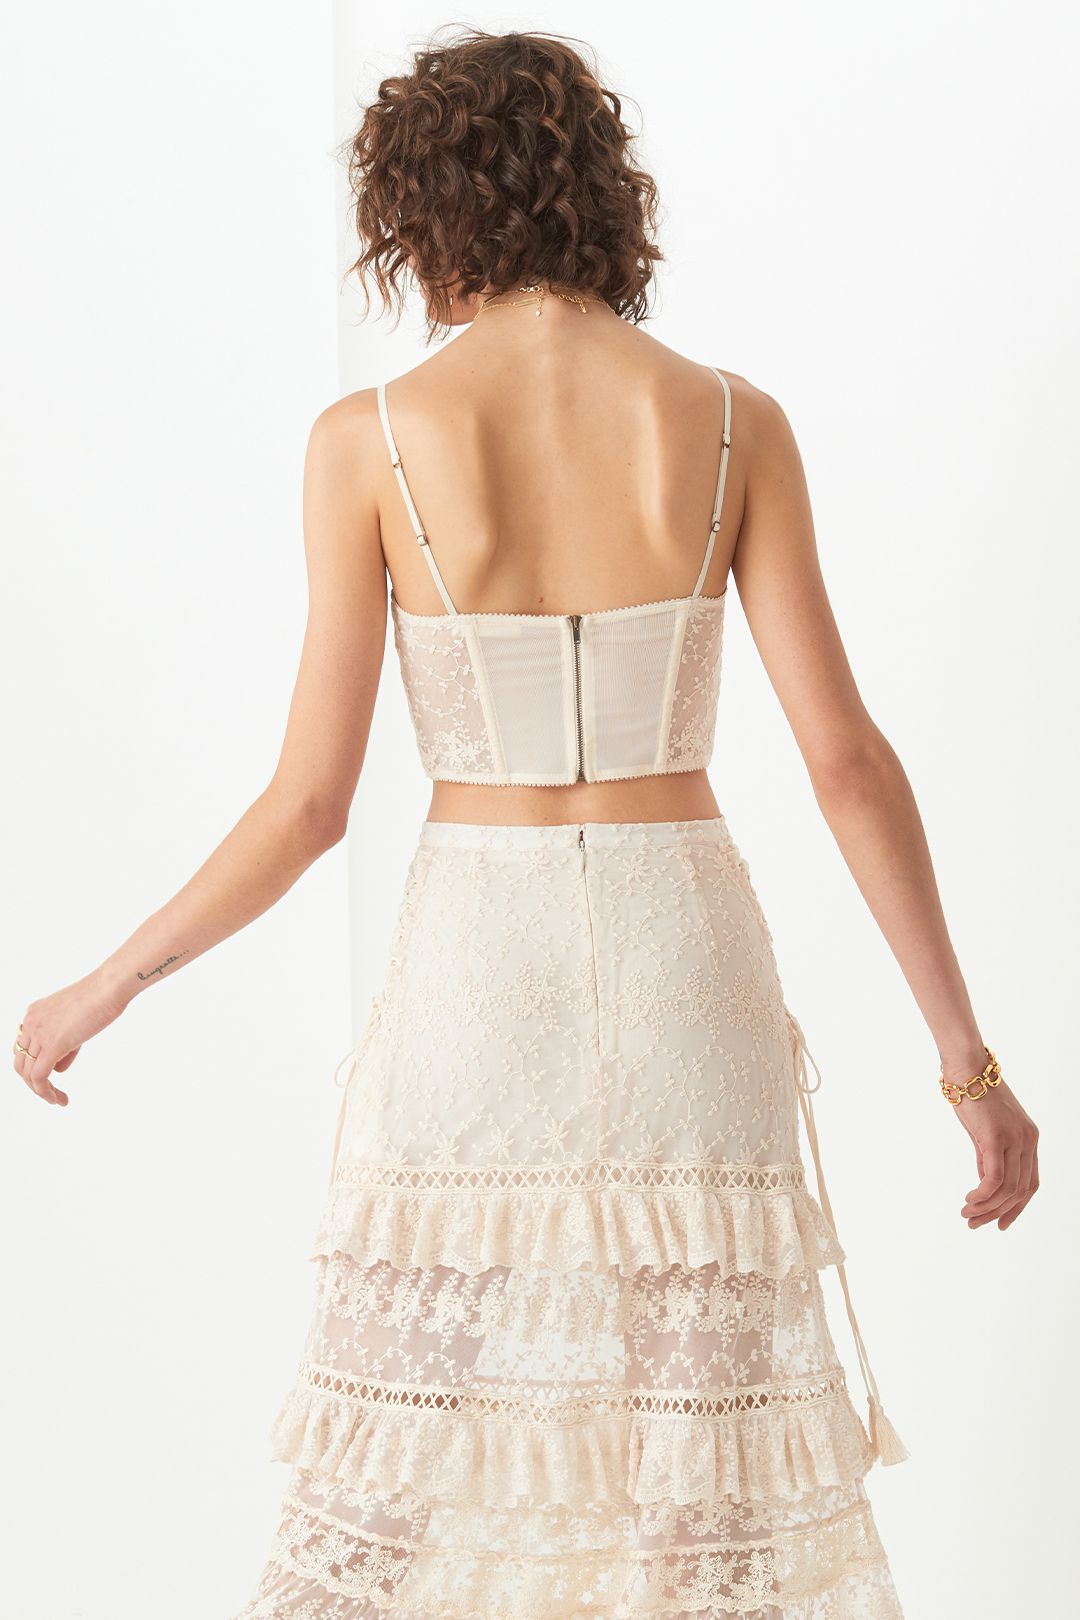 Spell Le Gauze Lace Tiered Skirt and Bustier Set High Waisted